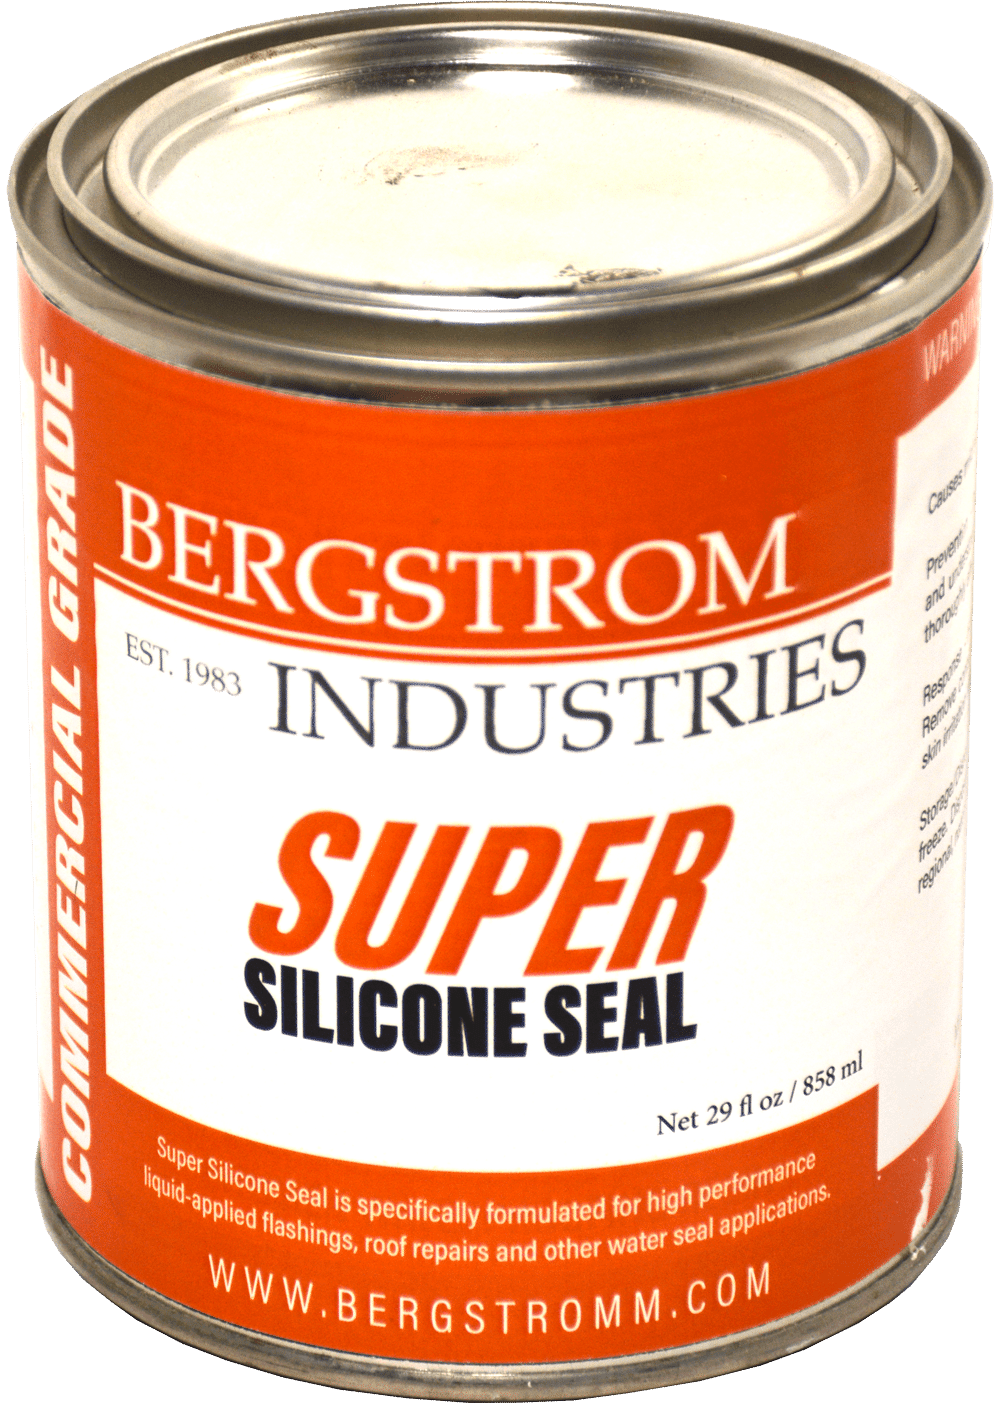 Super silicone Seal can M